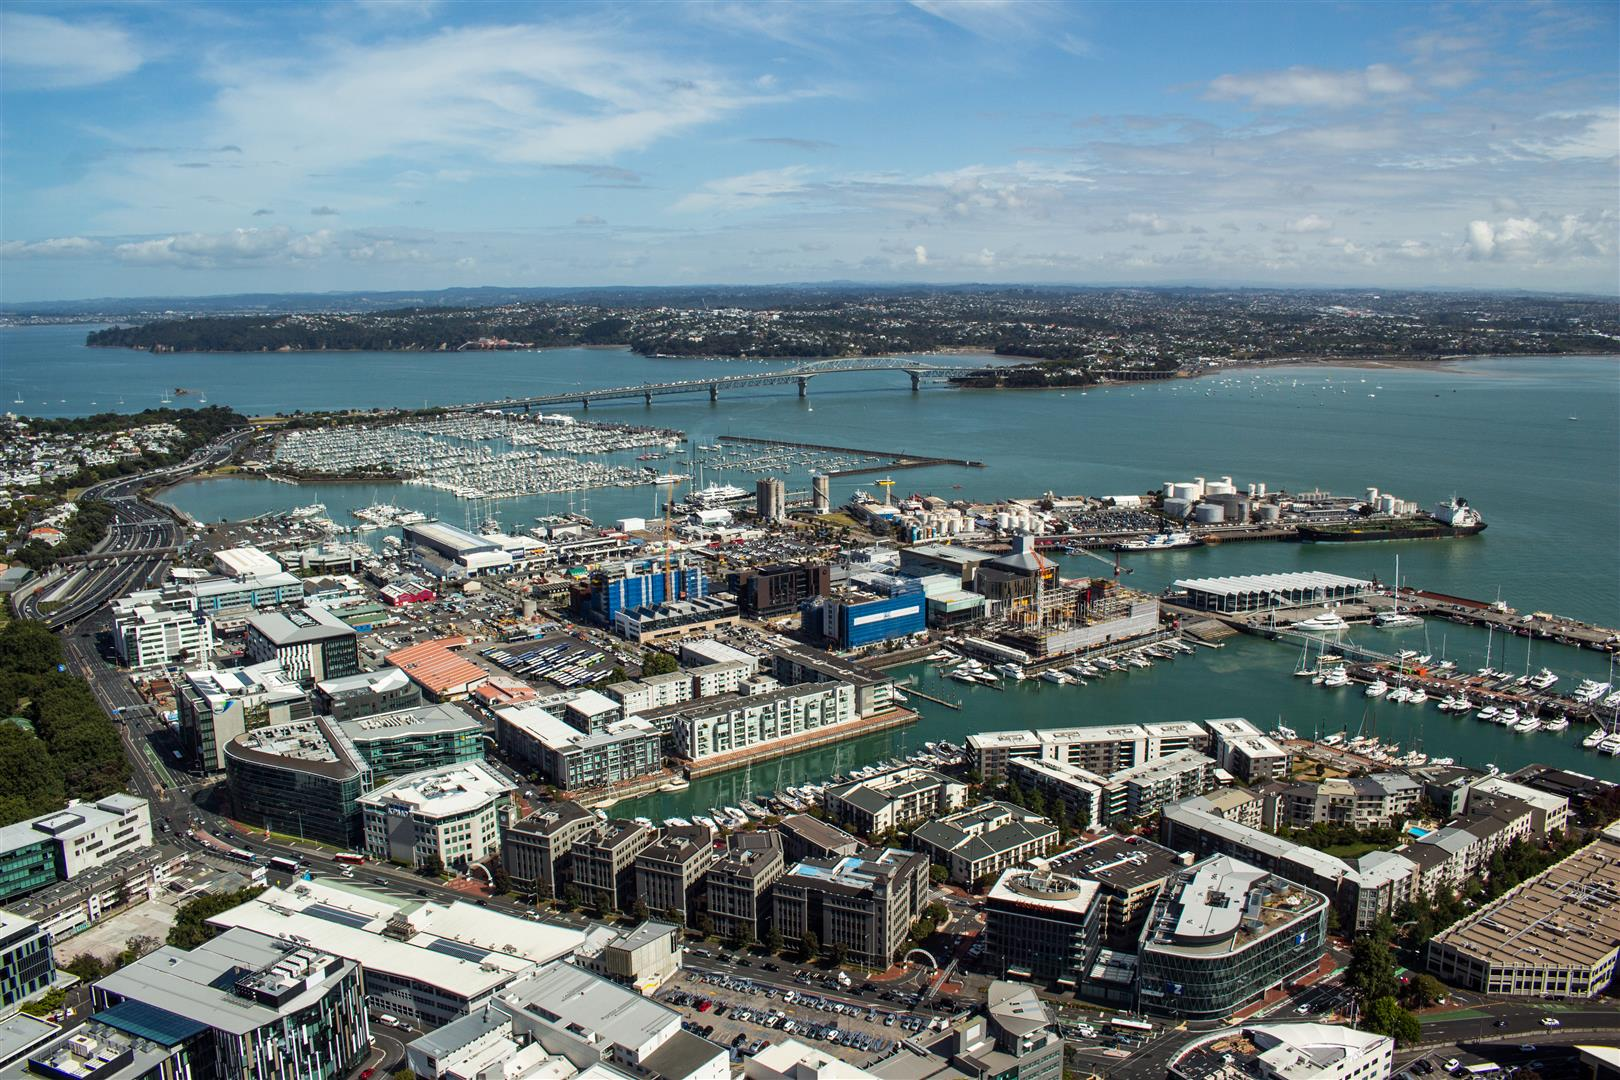 Glad I had a clear day, had a great 360-degree view of Auckland!